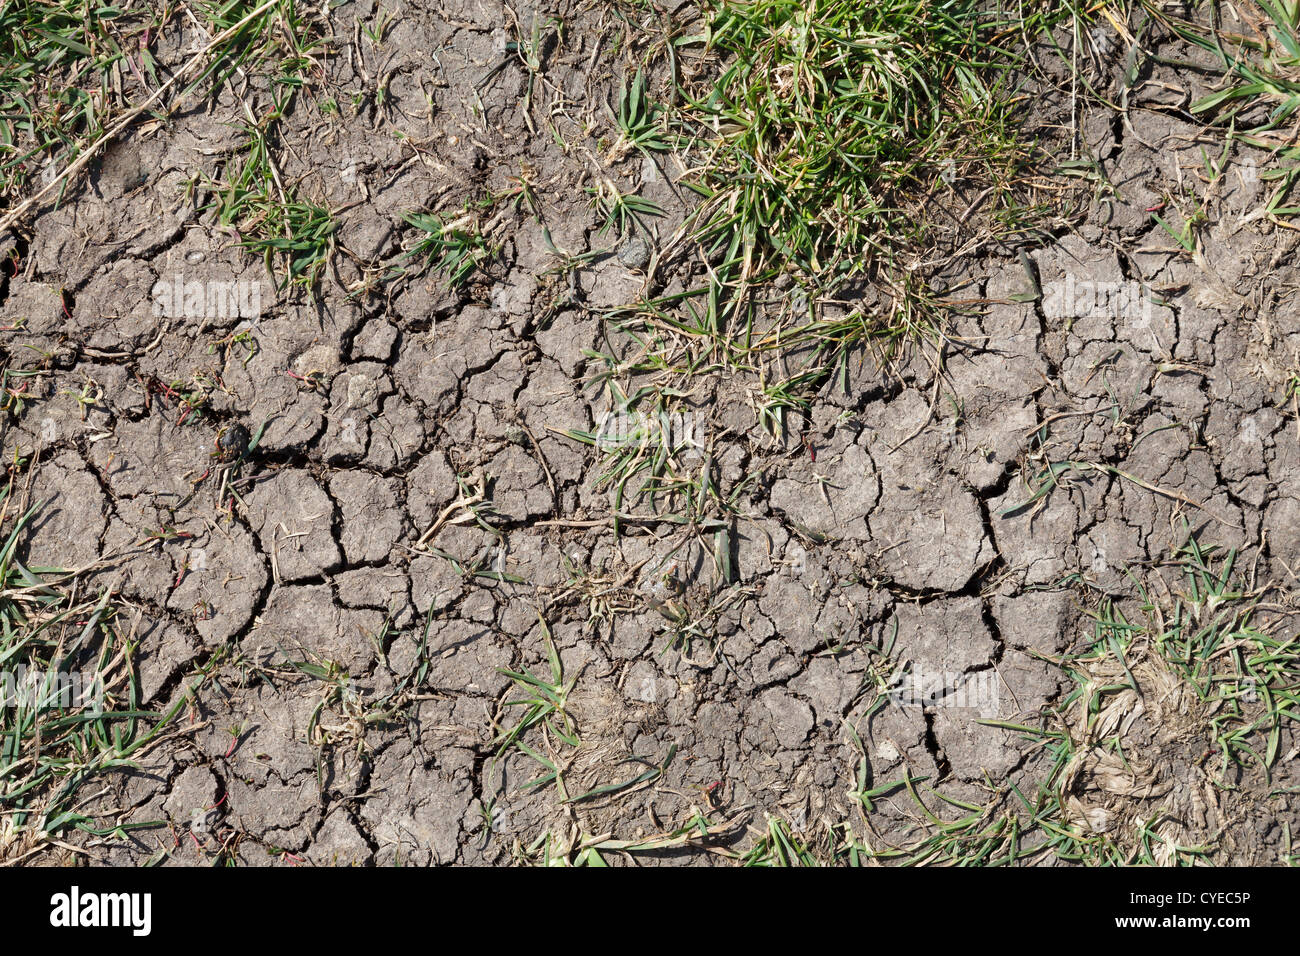 Infertile ground with cracks caused by dry weather - Stock Image